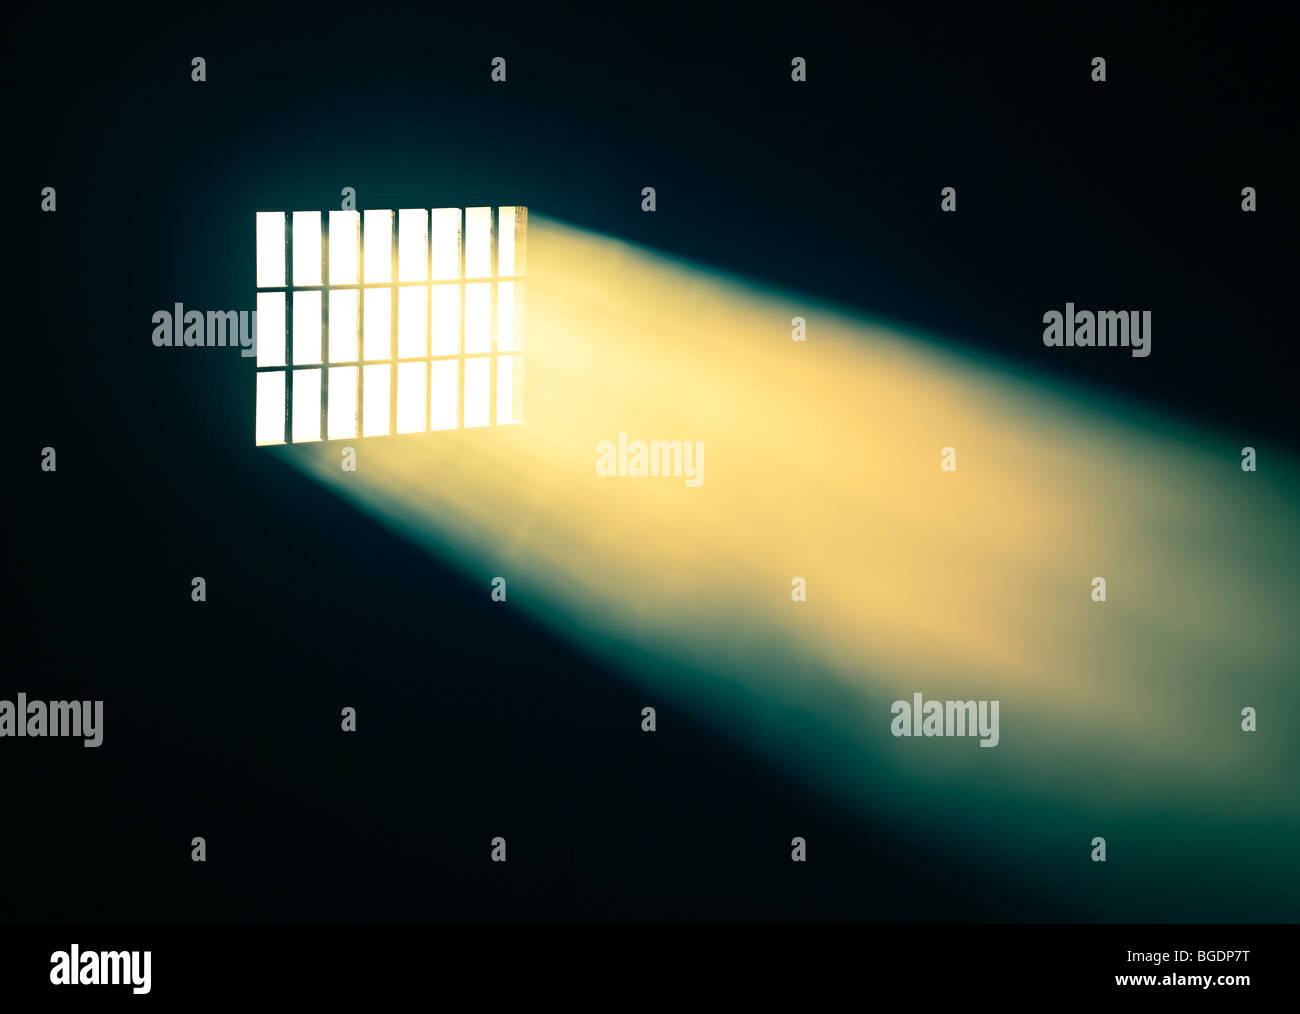 Window with rays of light - Stock Image